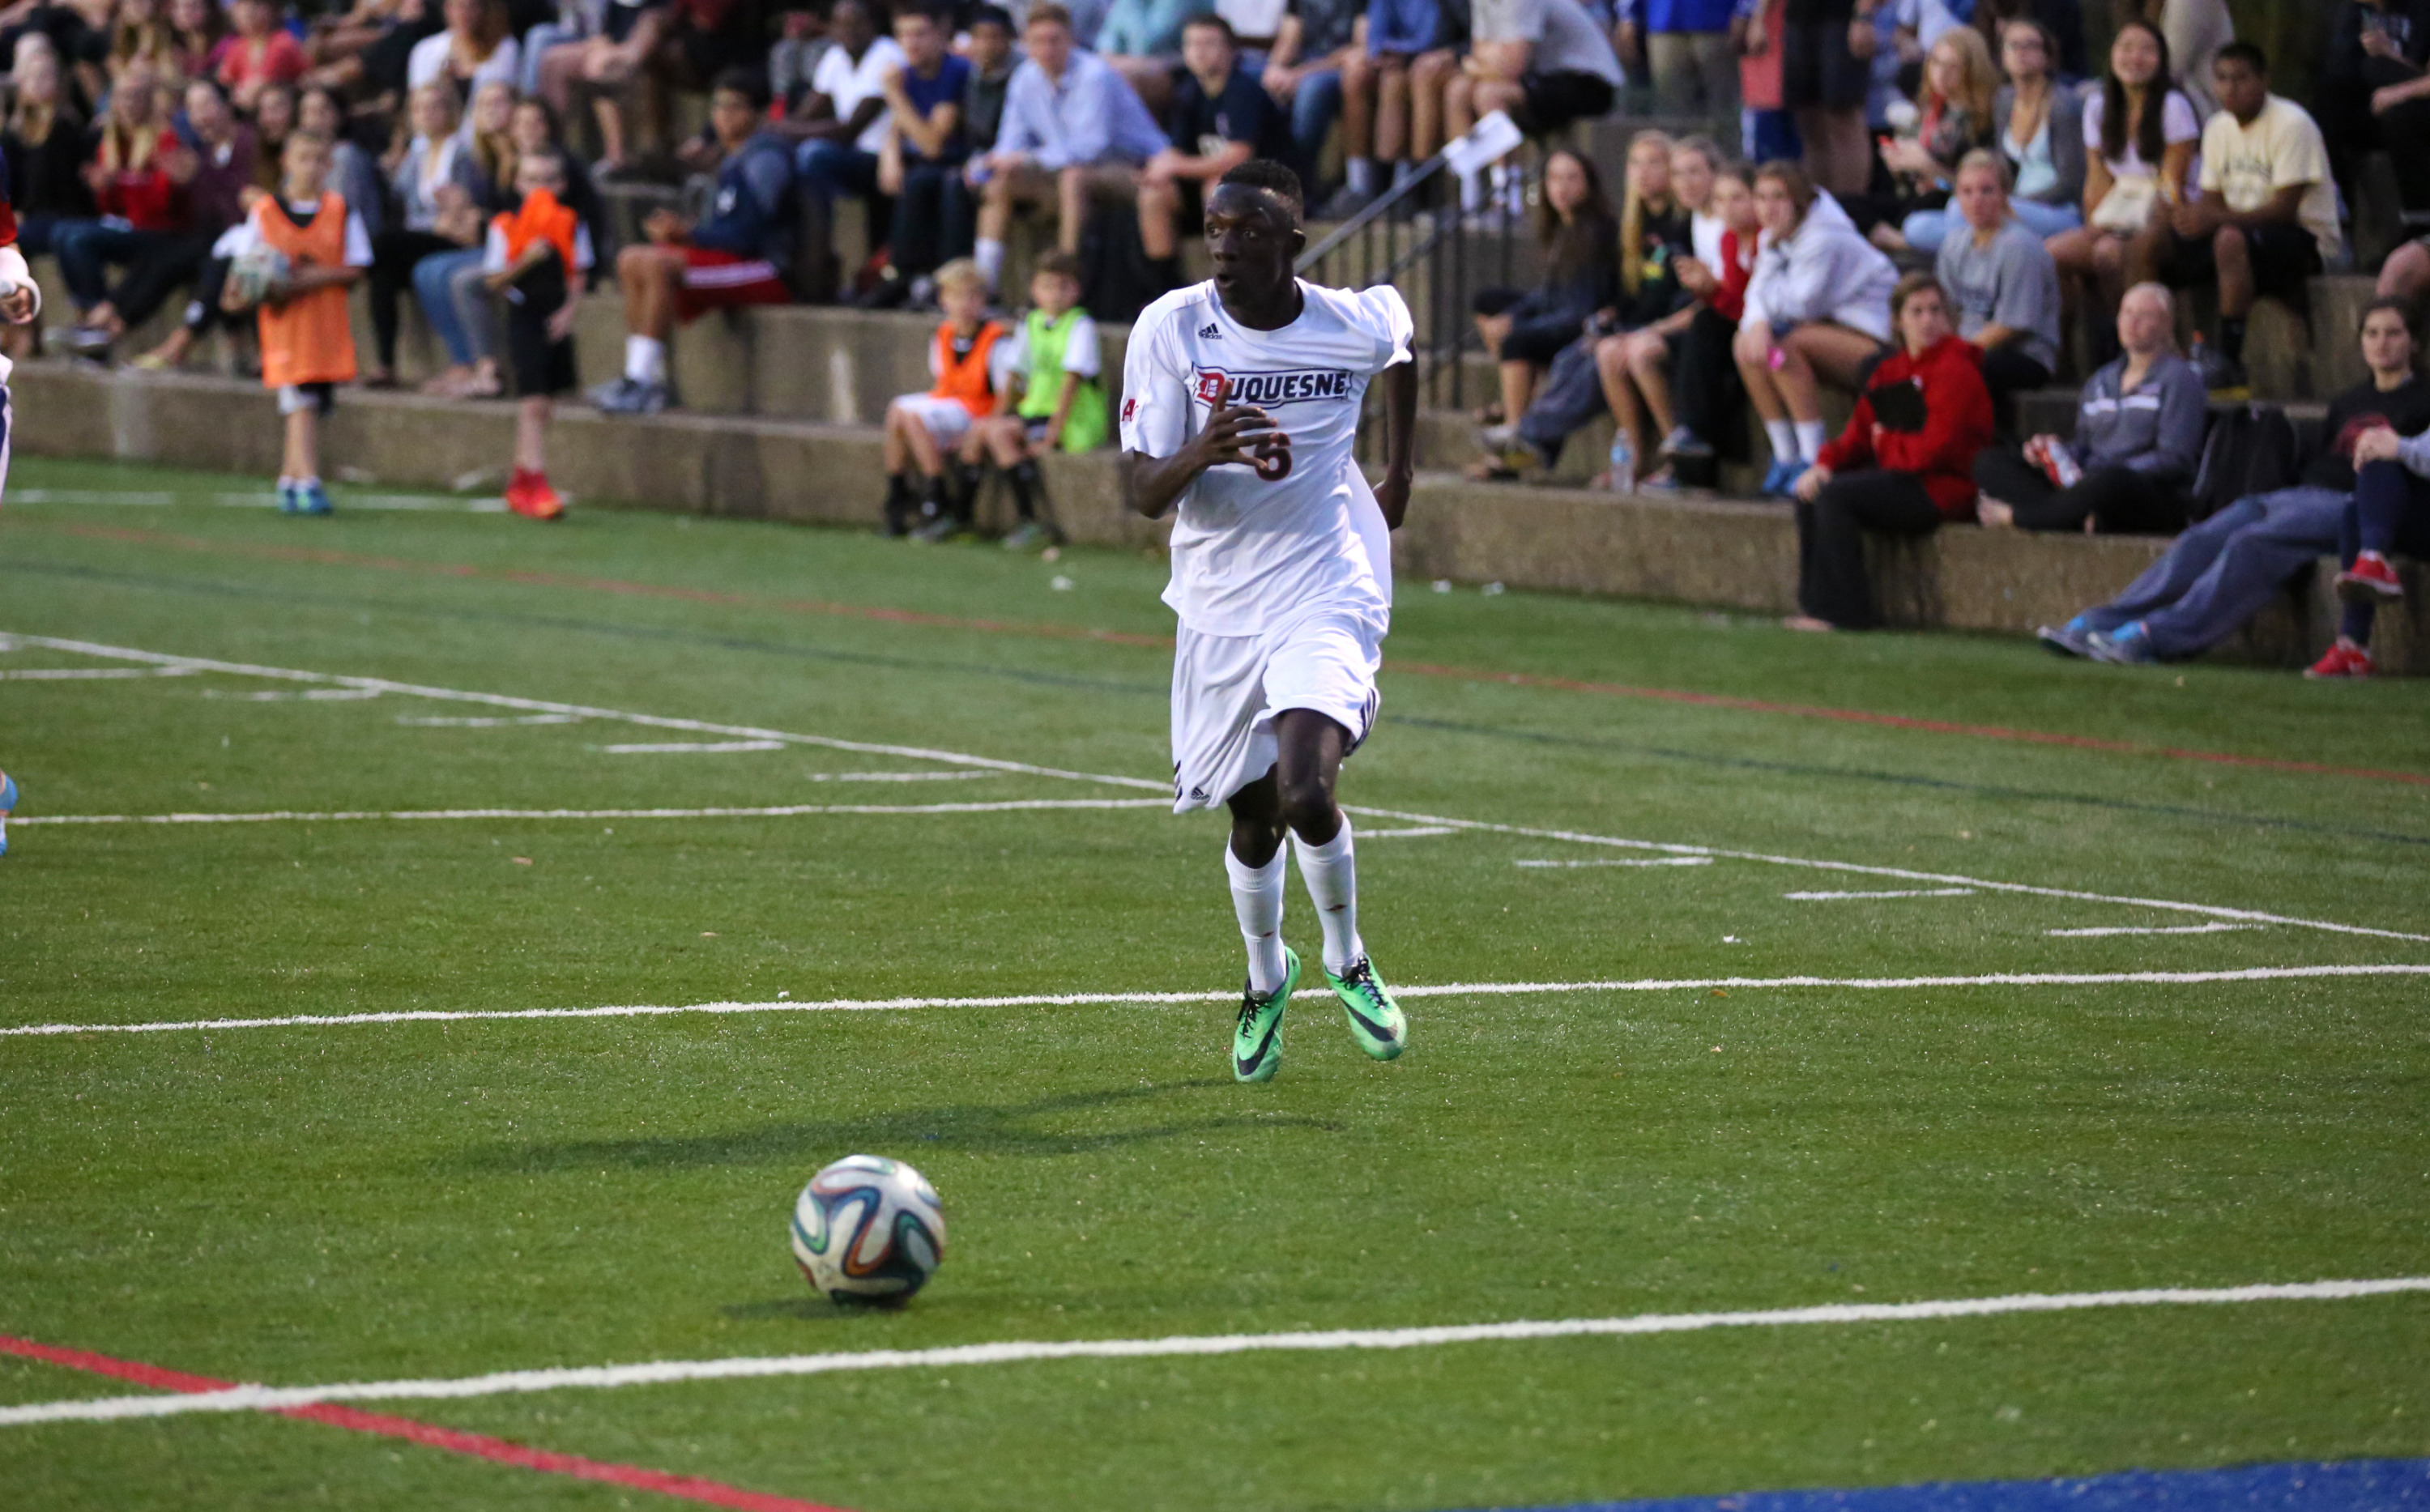 Dorian Kouame had a pair of assists for the Dukes.